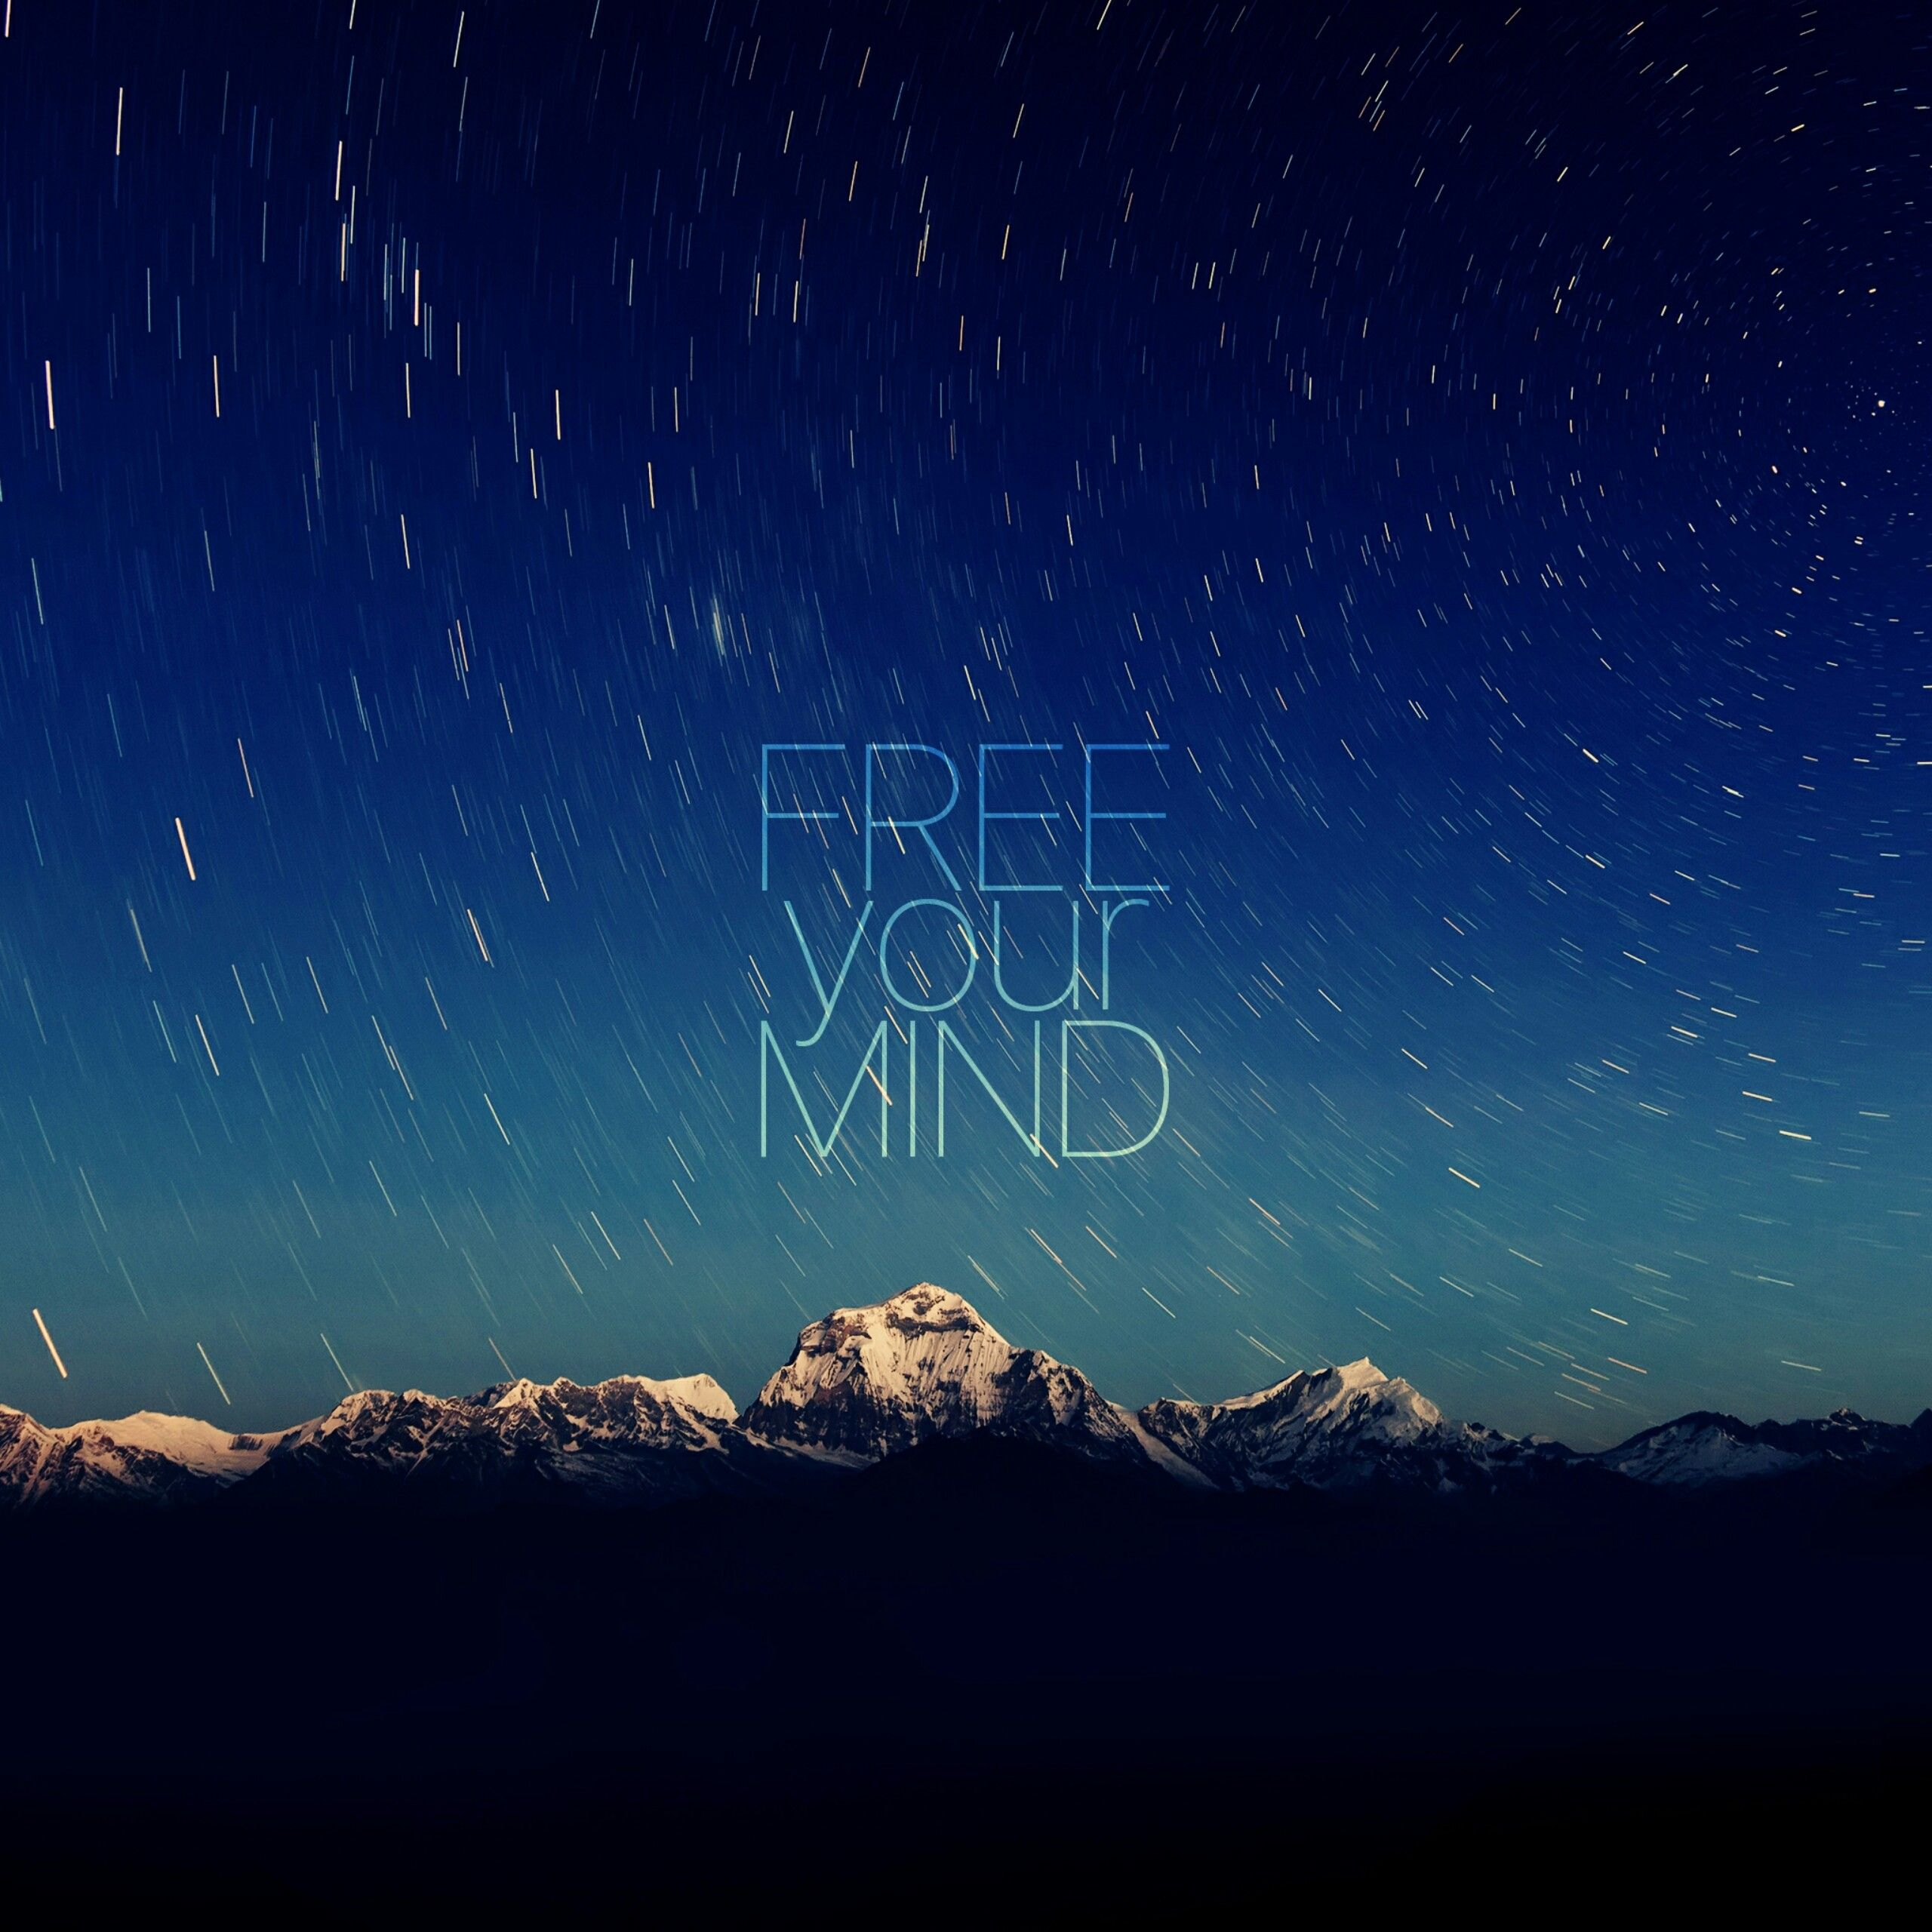 Free Your Mind Quotes Qhd Wallpaper 2560x2560 Wallpaper Qhd